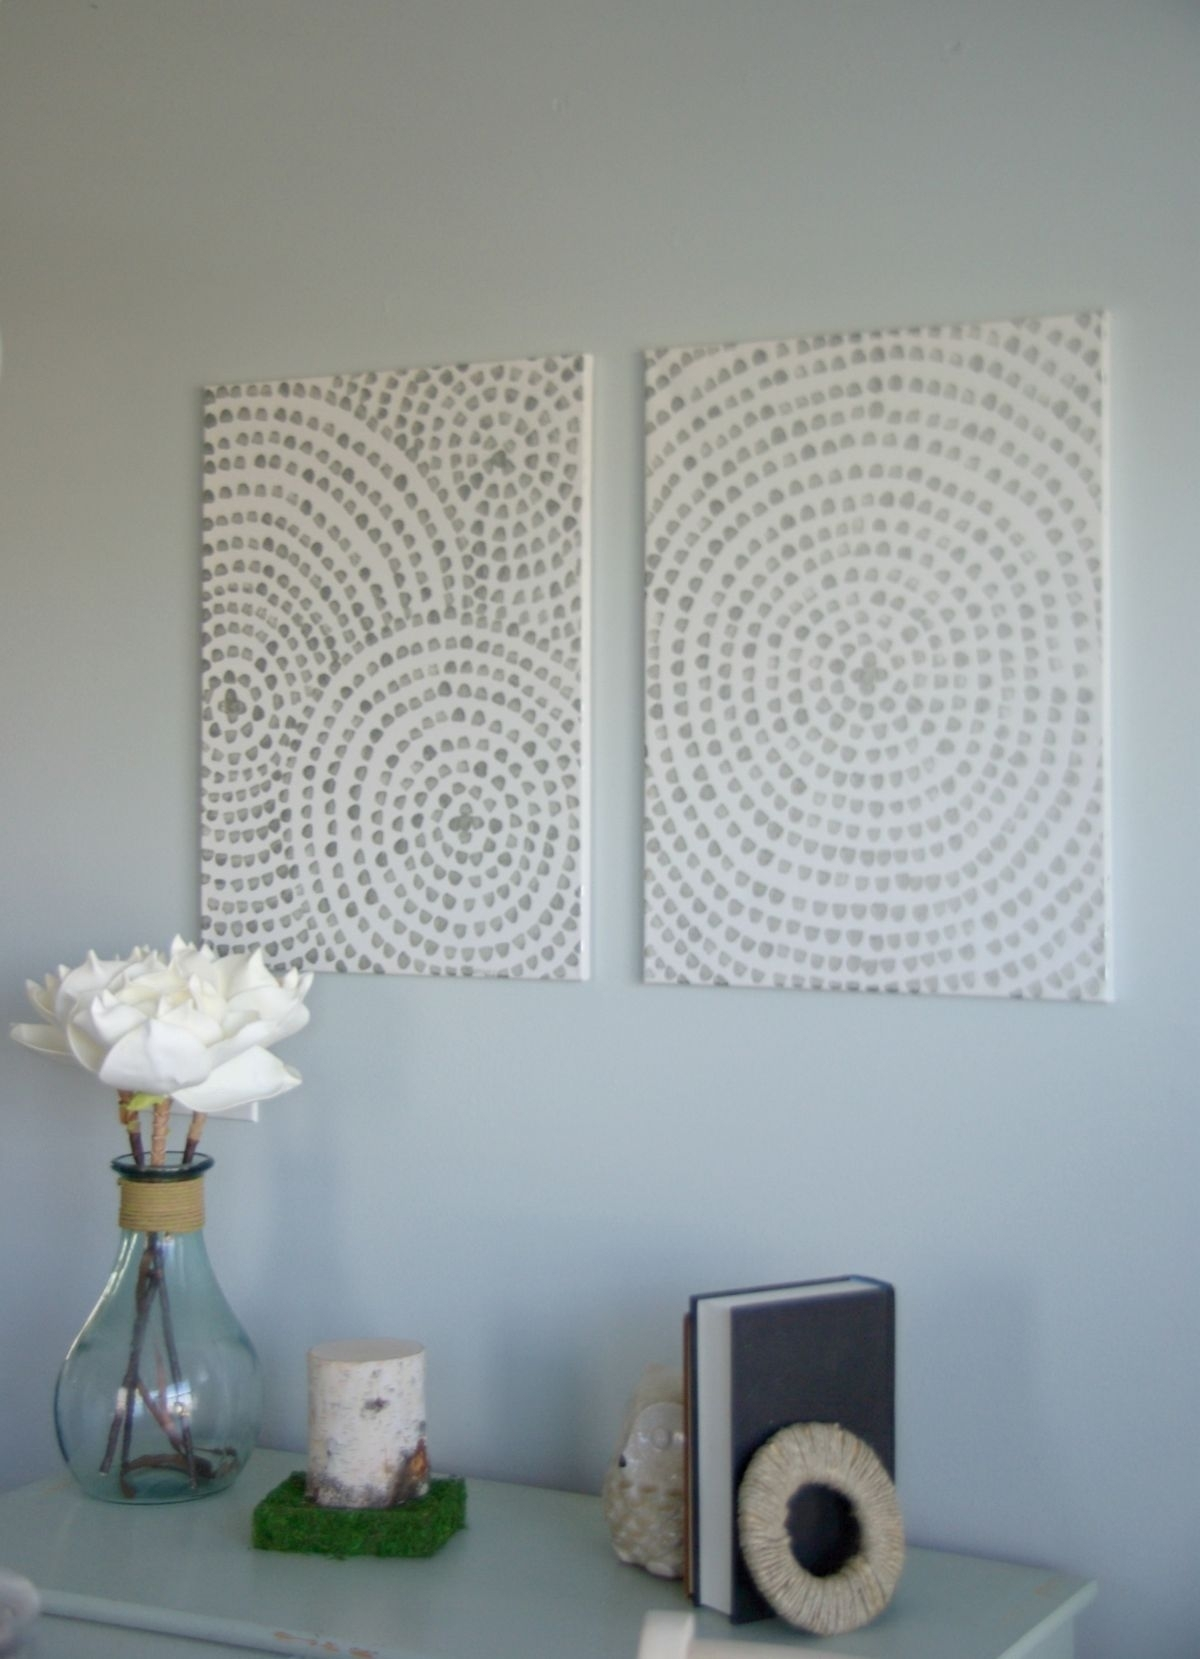 Diy Canvas Wall Art – A Low Cost Way To Add Art To Your Home | My Inside Most Recently Released Gray Canvas Wall Art (View 9 of 20)